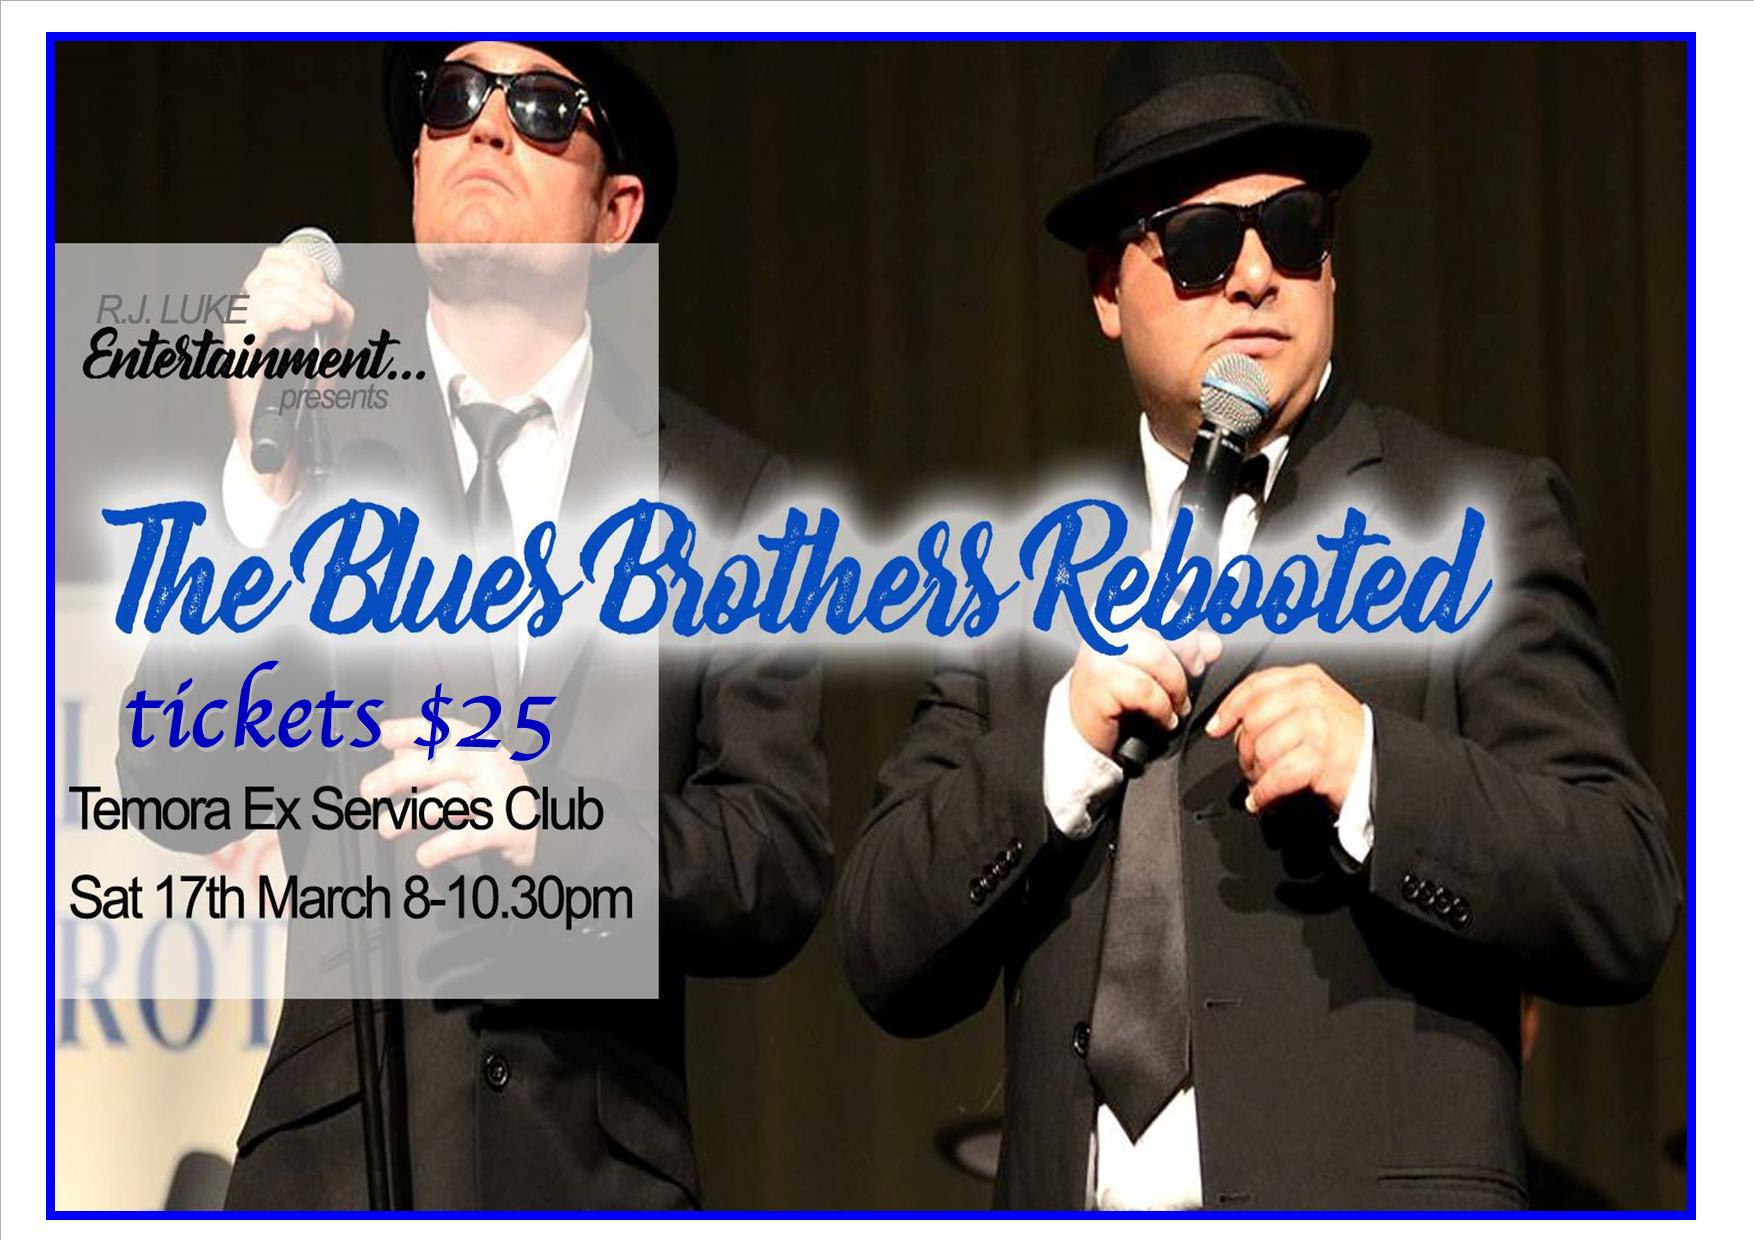 The Blues Brothers Rebooted